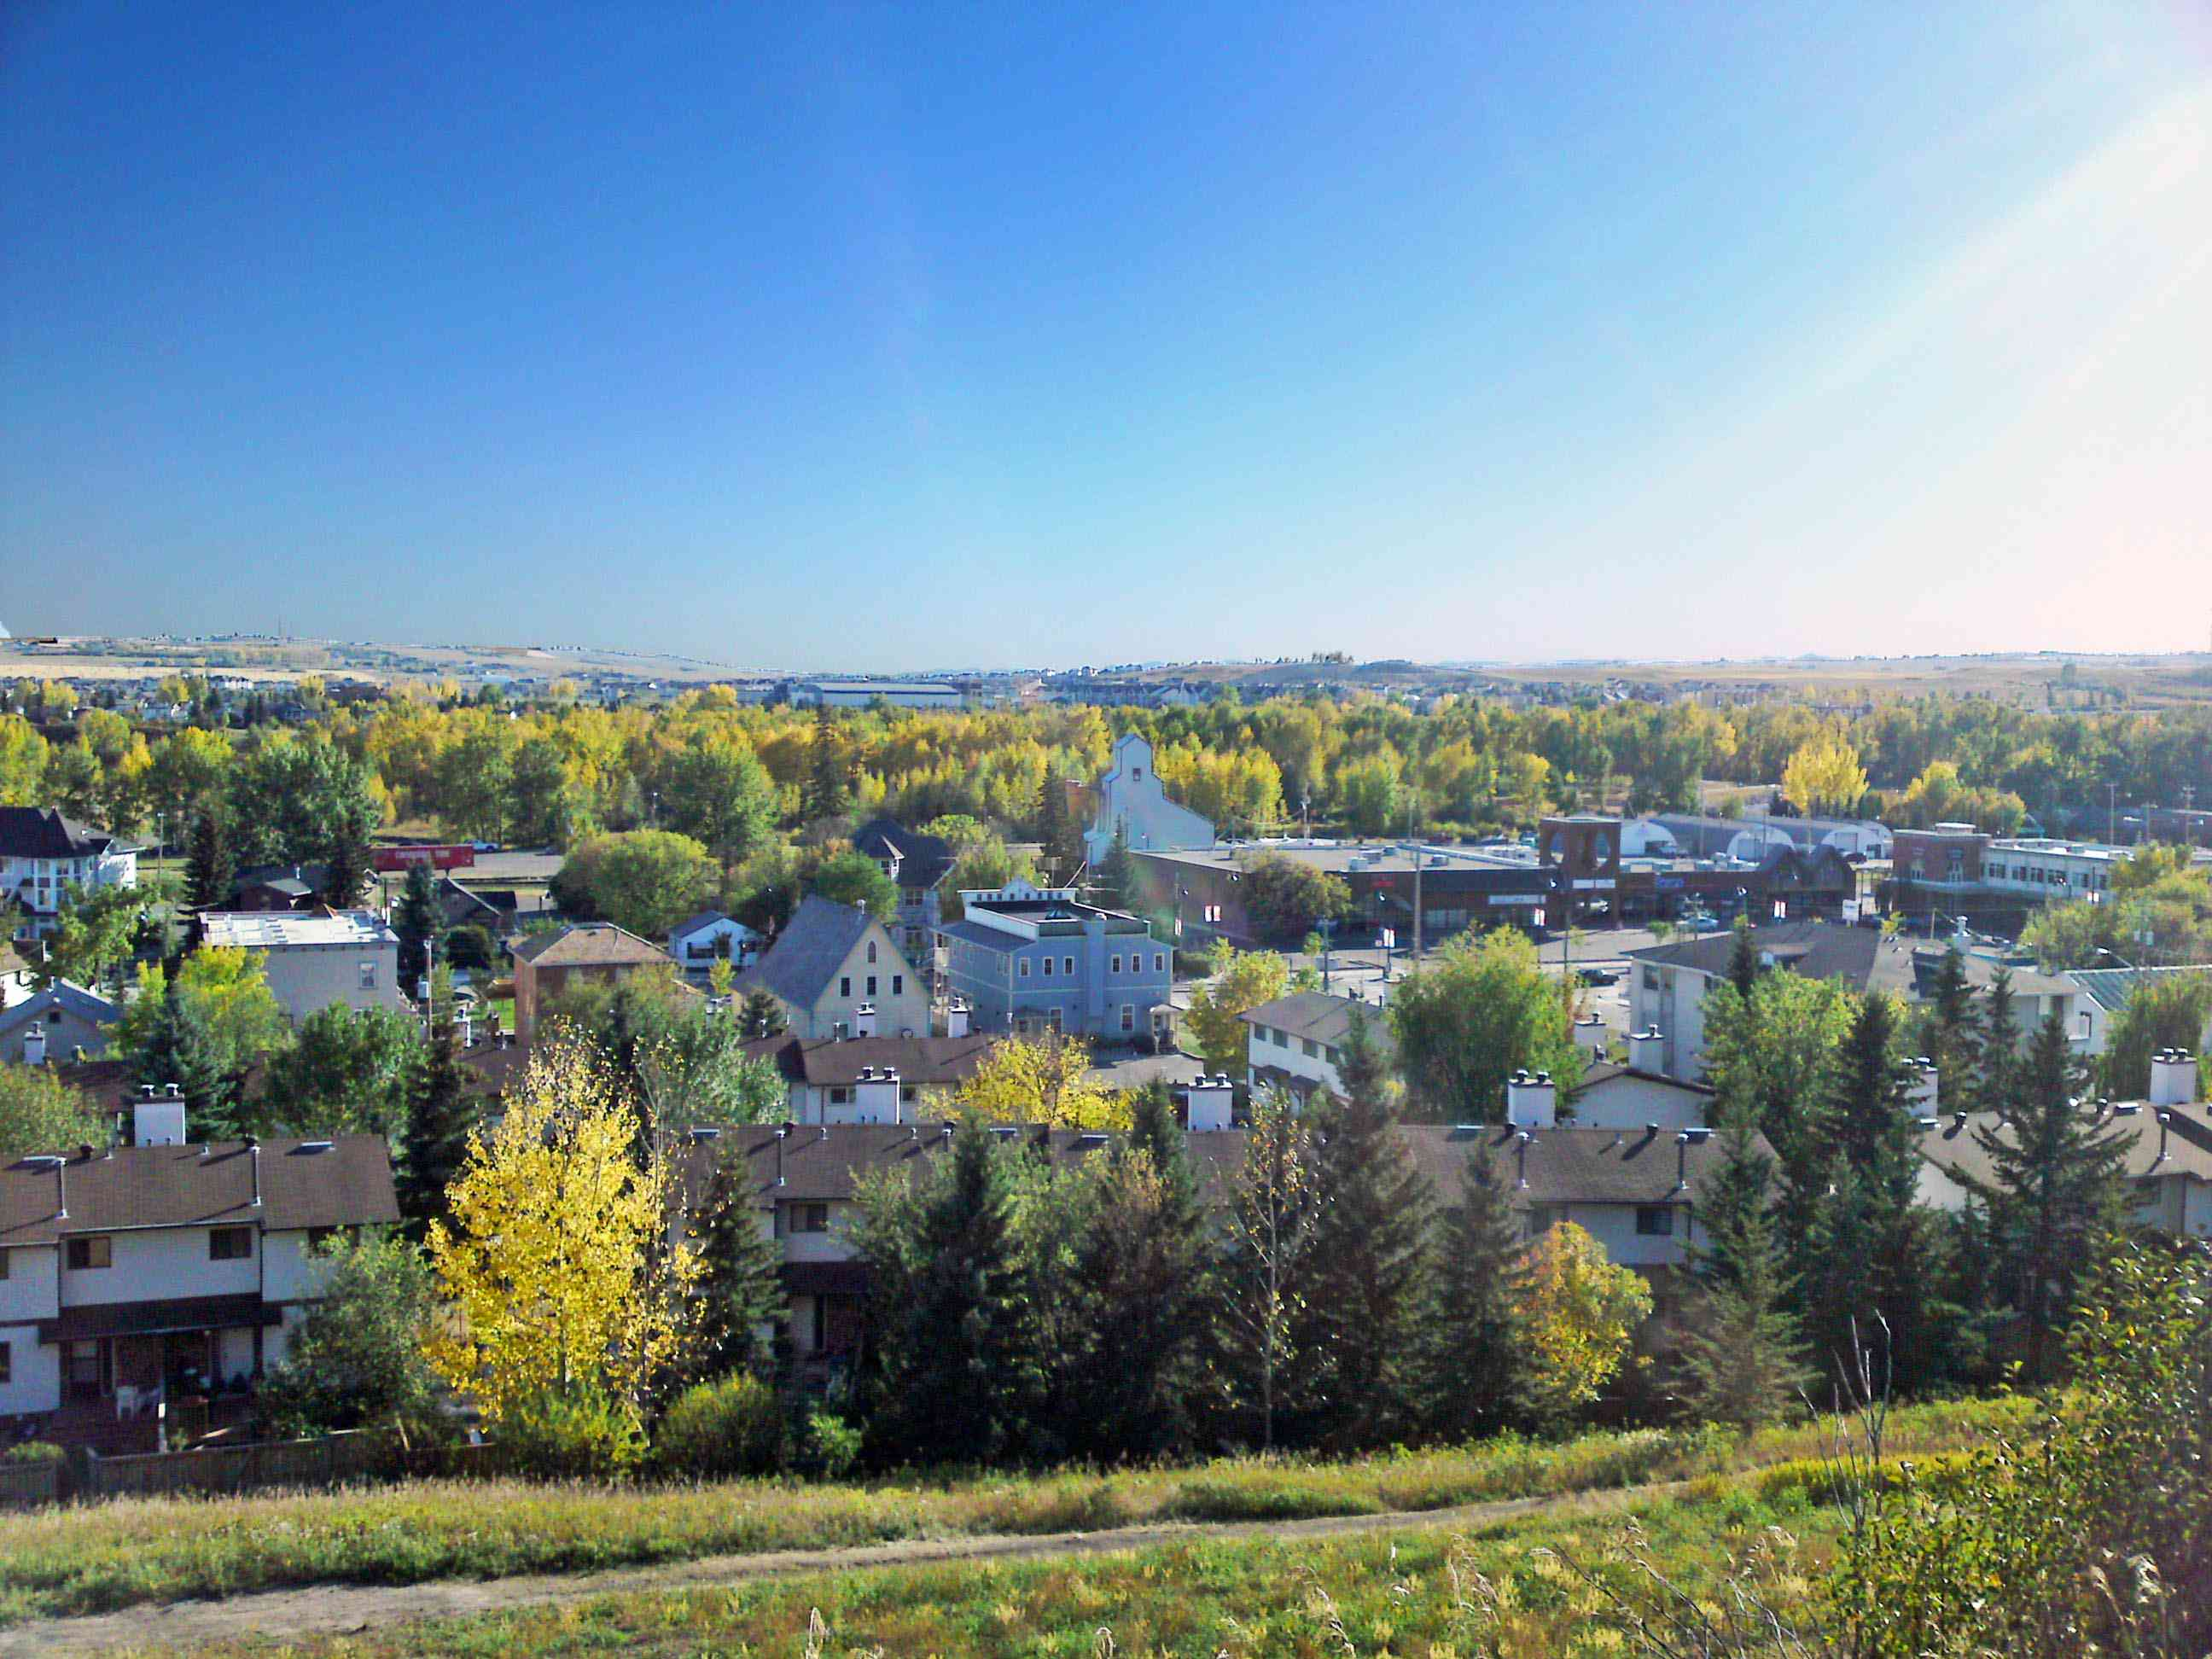 view of buildings and trees in downtown okotoks